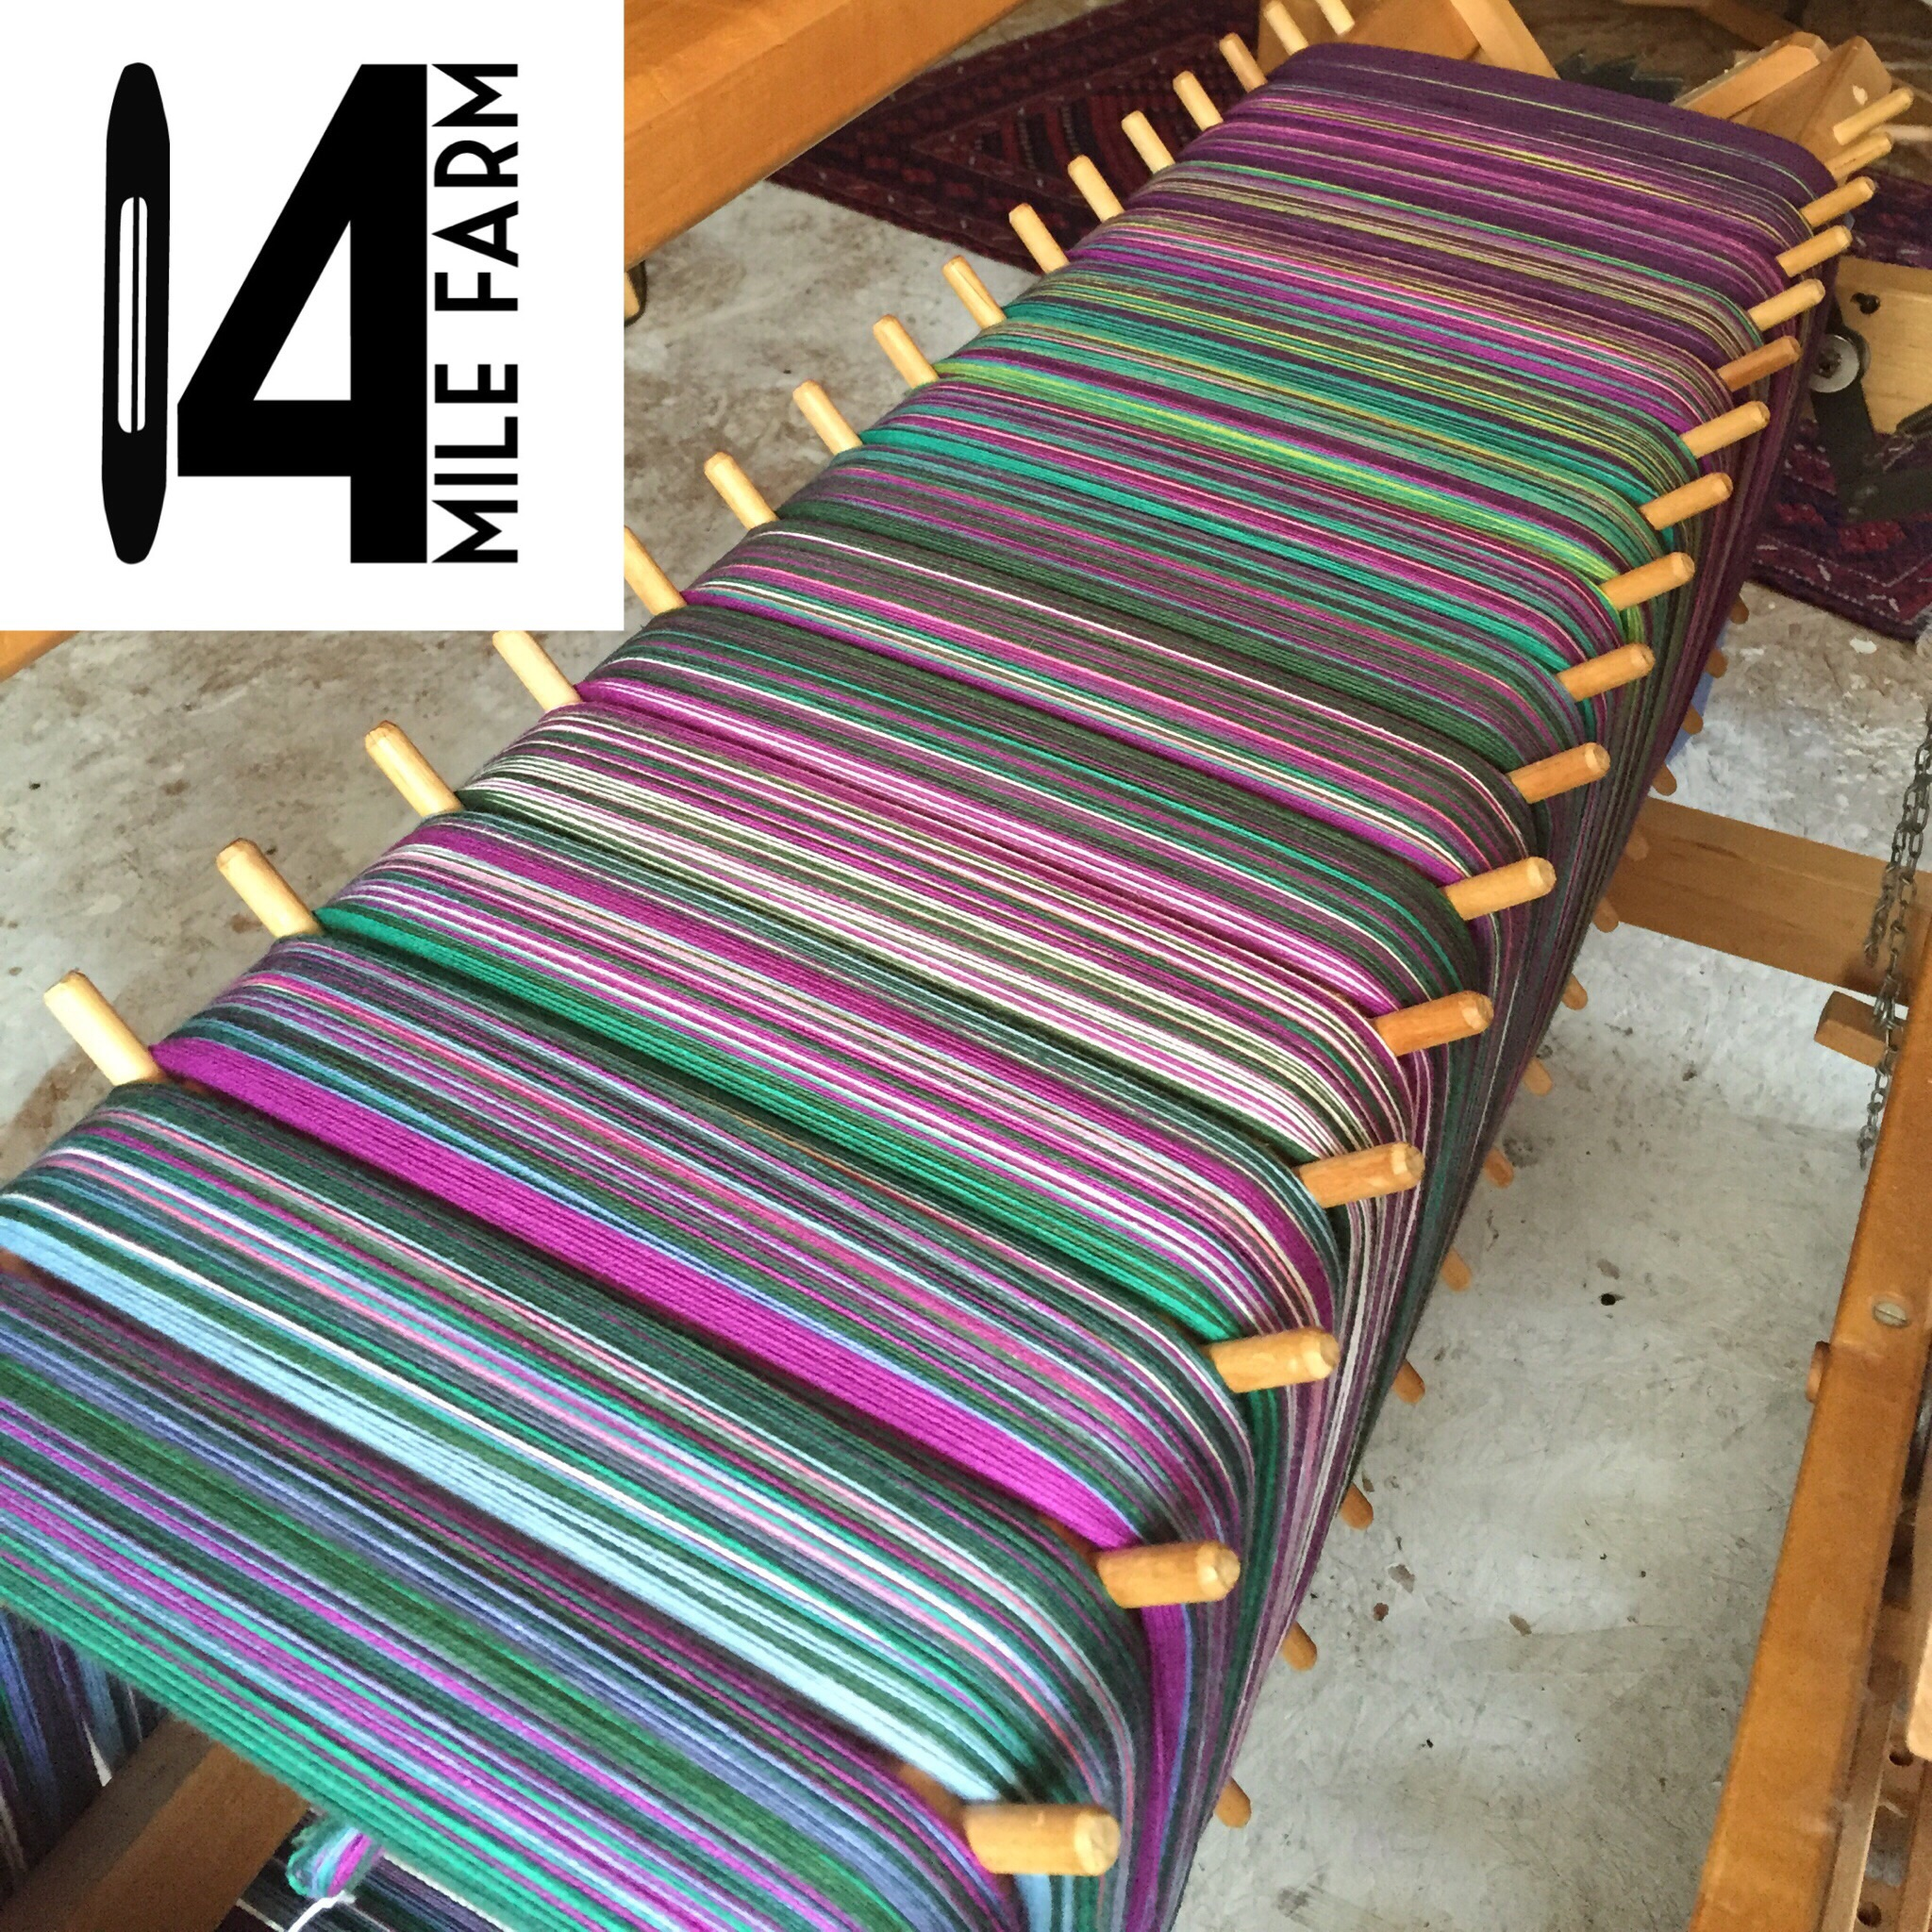 Warping a handwoven baby wrap : Field of Dreams by 14 Mile Farm